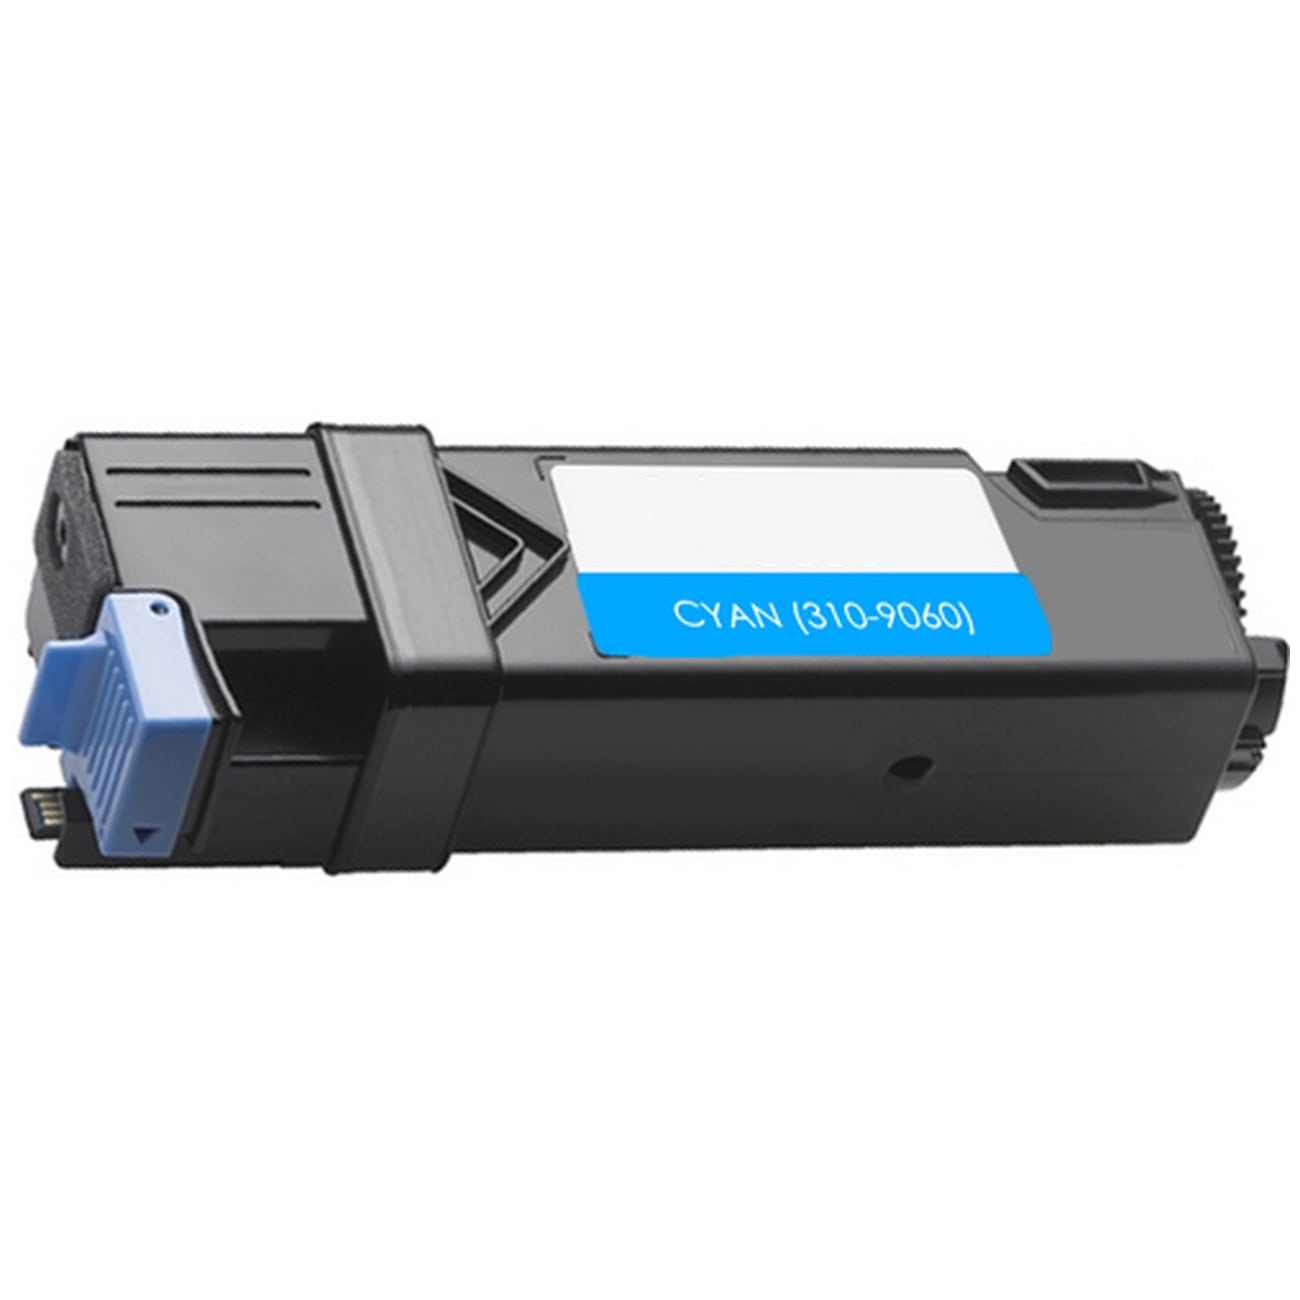 310-9060 Toner Cartridge - Dell Compatible (Cyan)